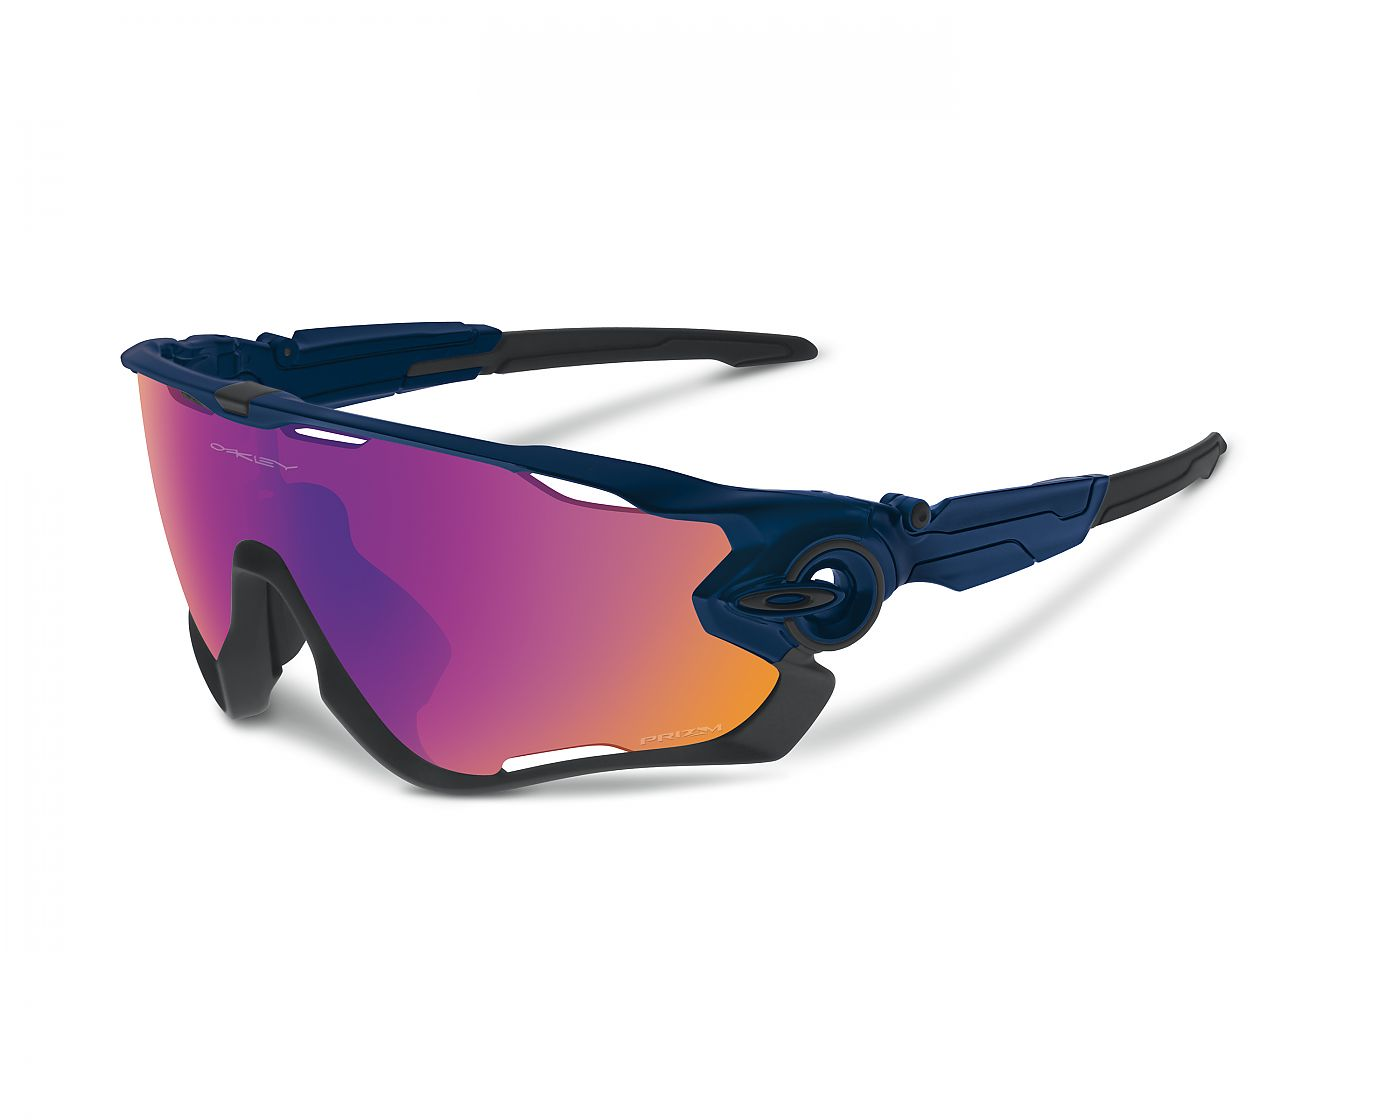 3c6922daccf New Oakley Jawbreaker inspired by Mark Cavendish. Previous  Next